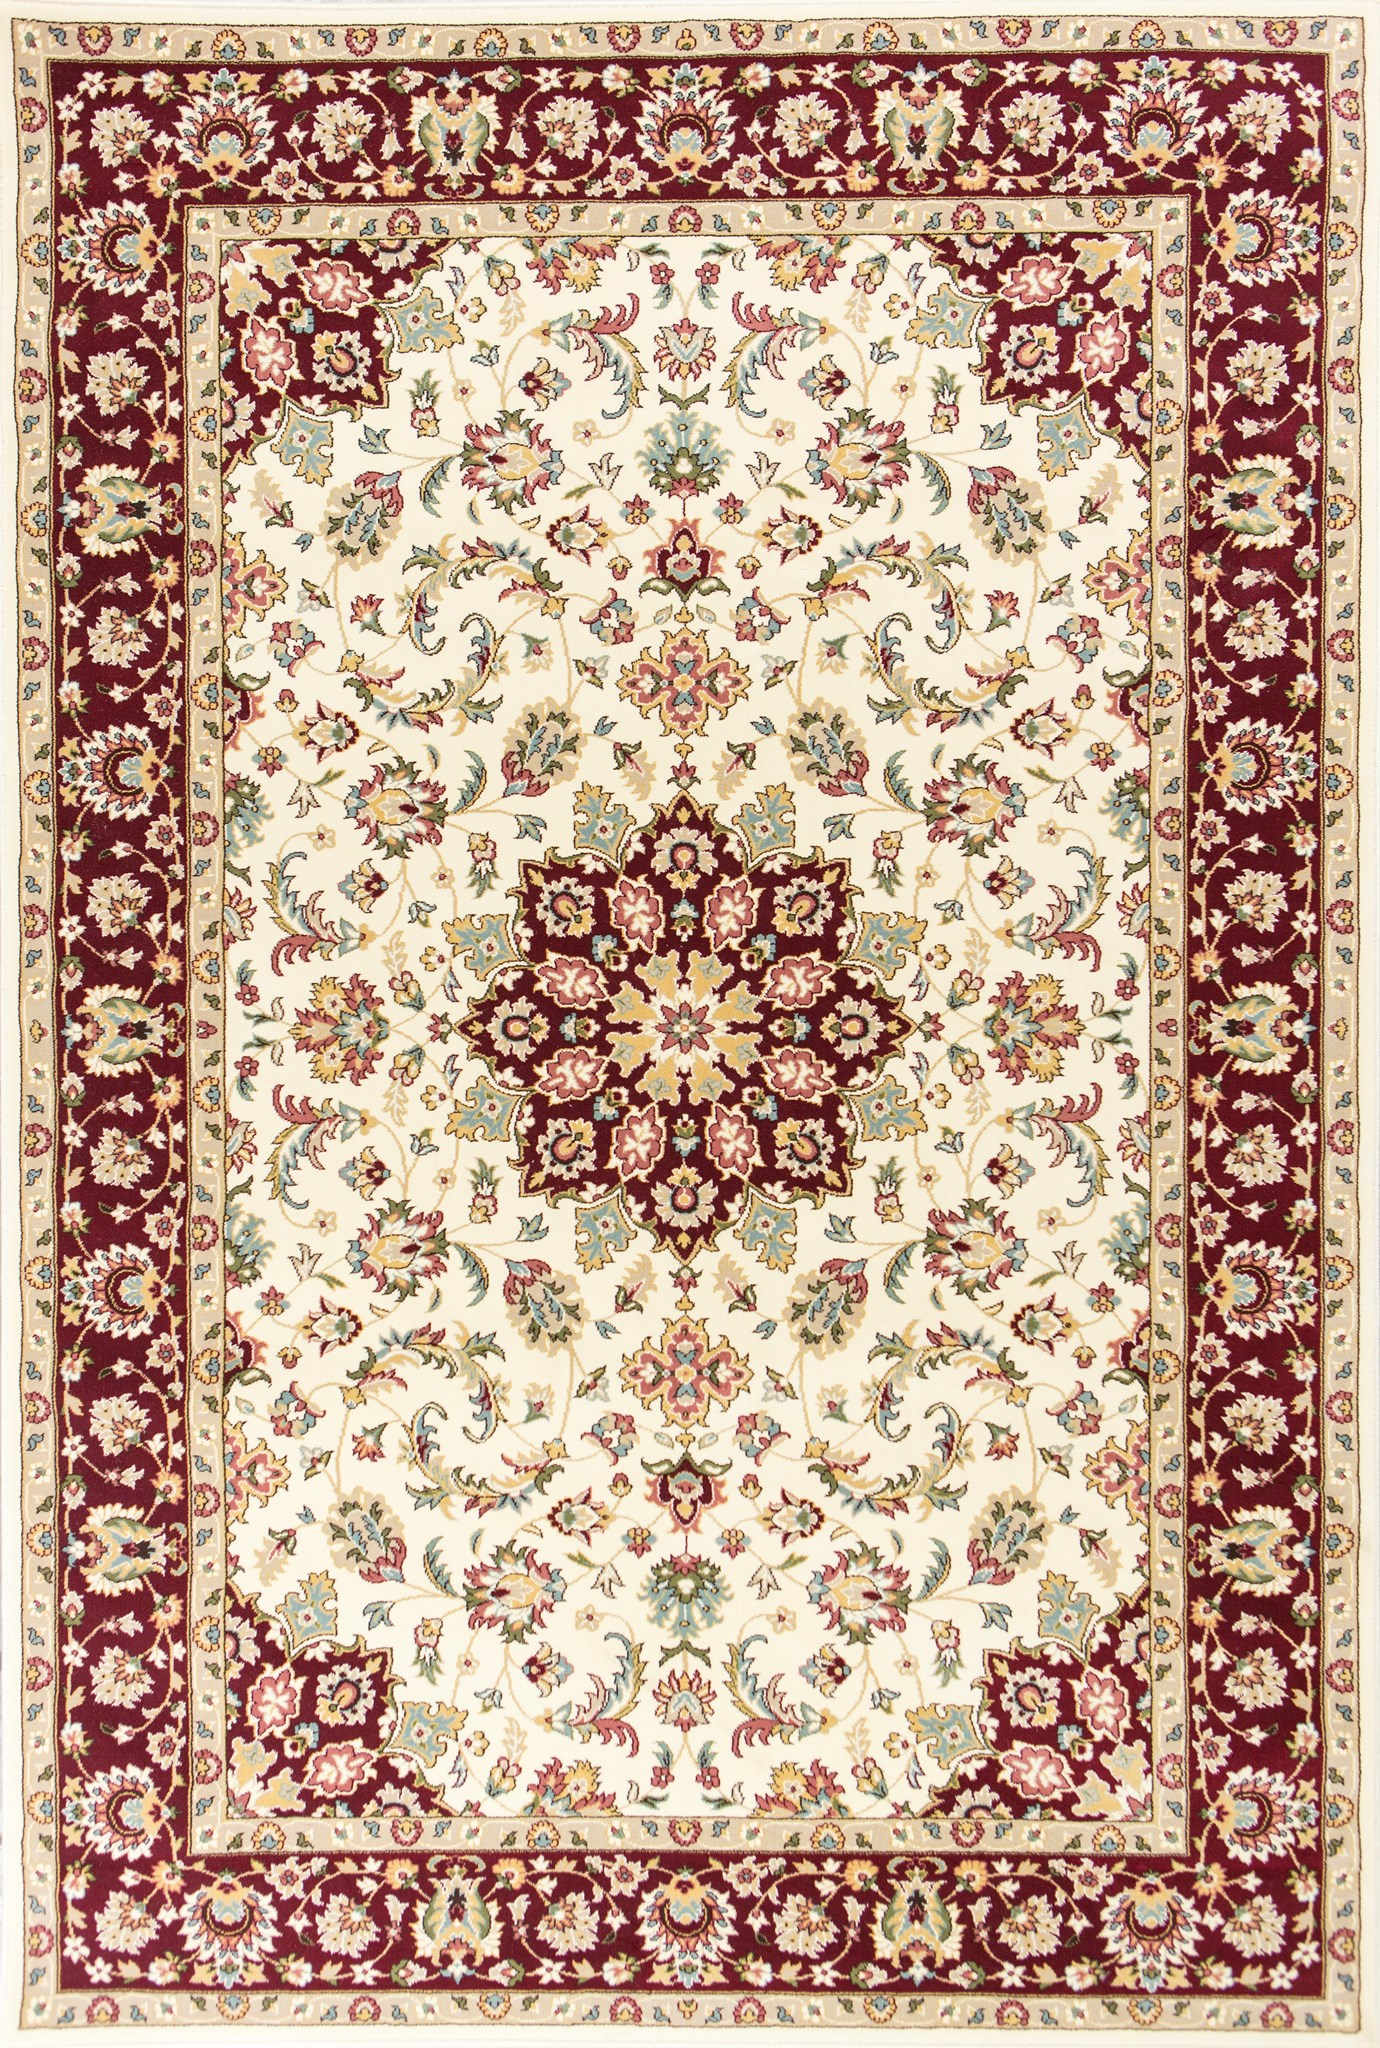 Kingston 6412 Ivory/Red Tabriz